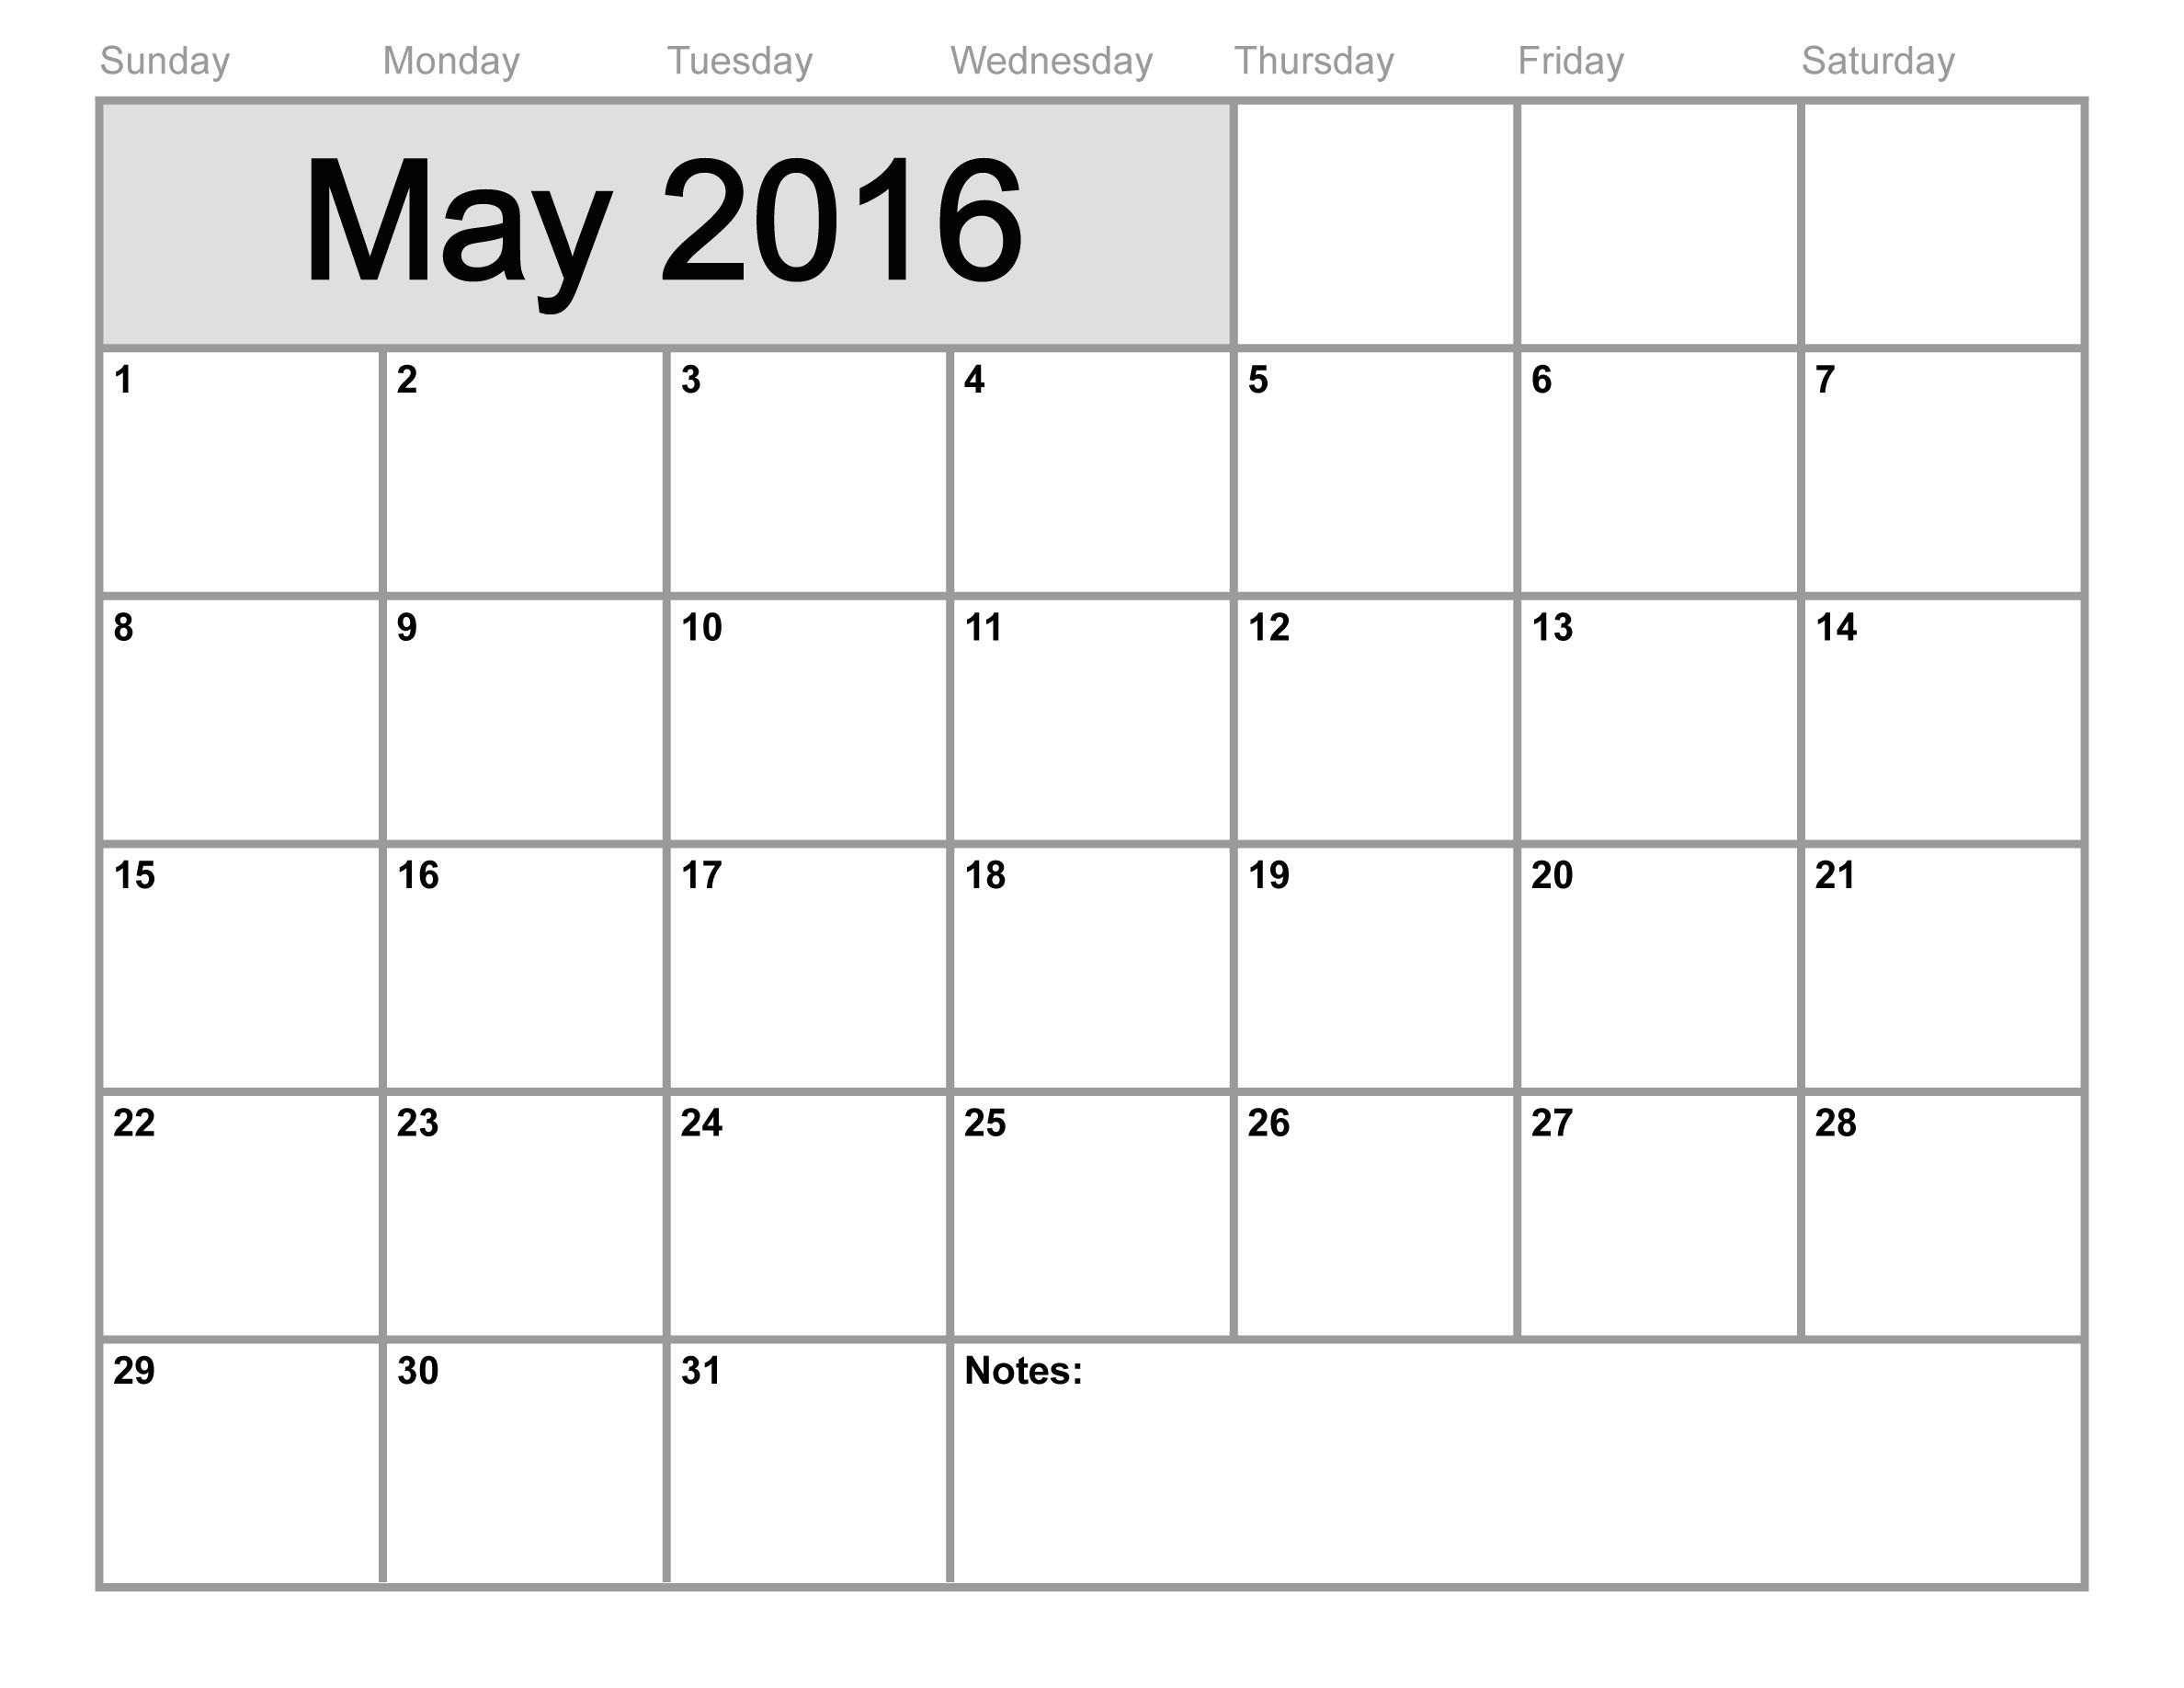 May 2016 Printable Calendar PDF, May 2016 Printable Calendar Word, May 2016 Printable Calendar Excel, May 2016 printable Templates [PDF, Word,Excel] May 2016 Blank Templates [PDF, Word,Excel]